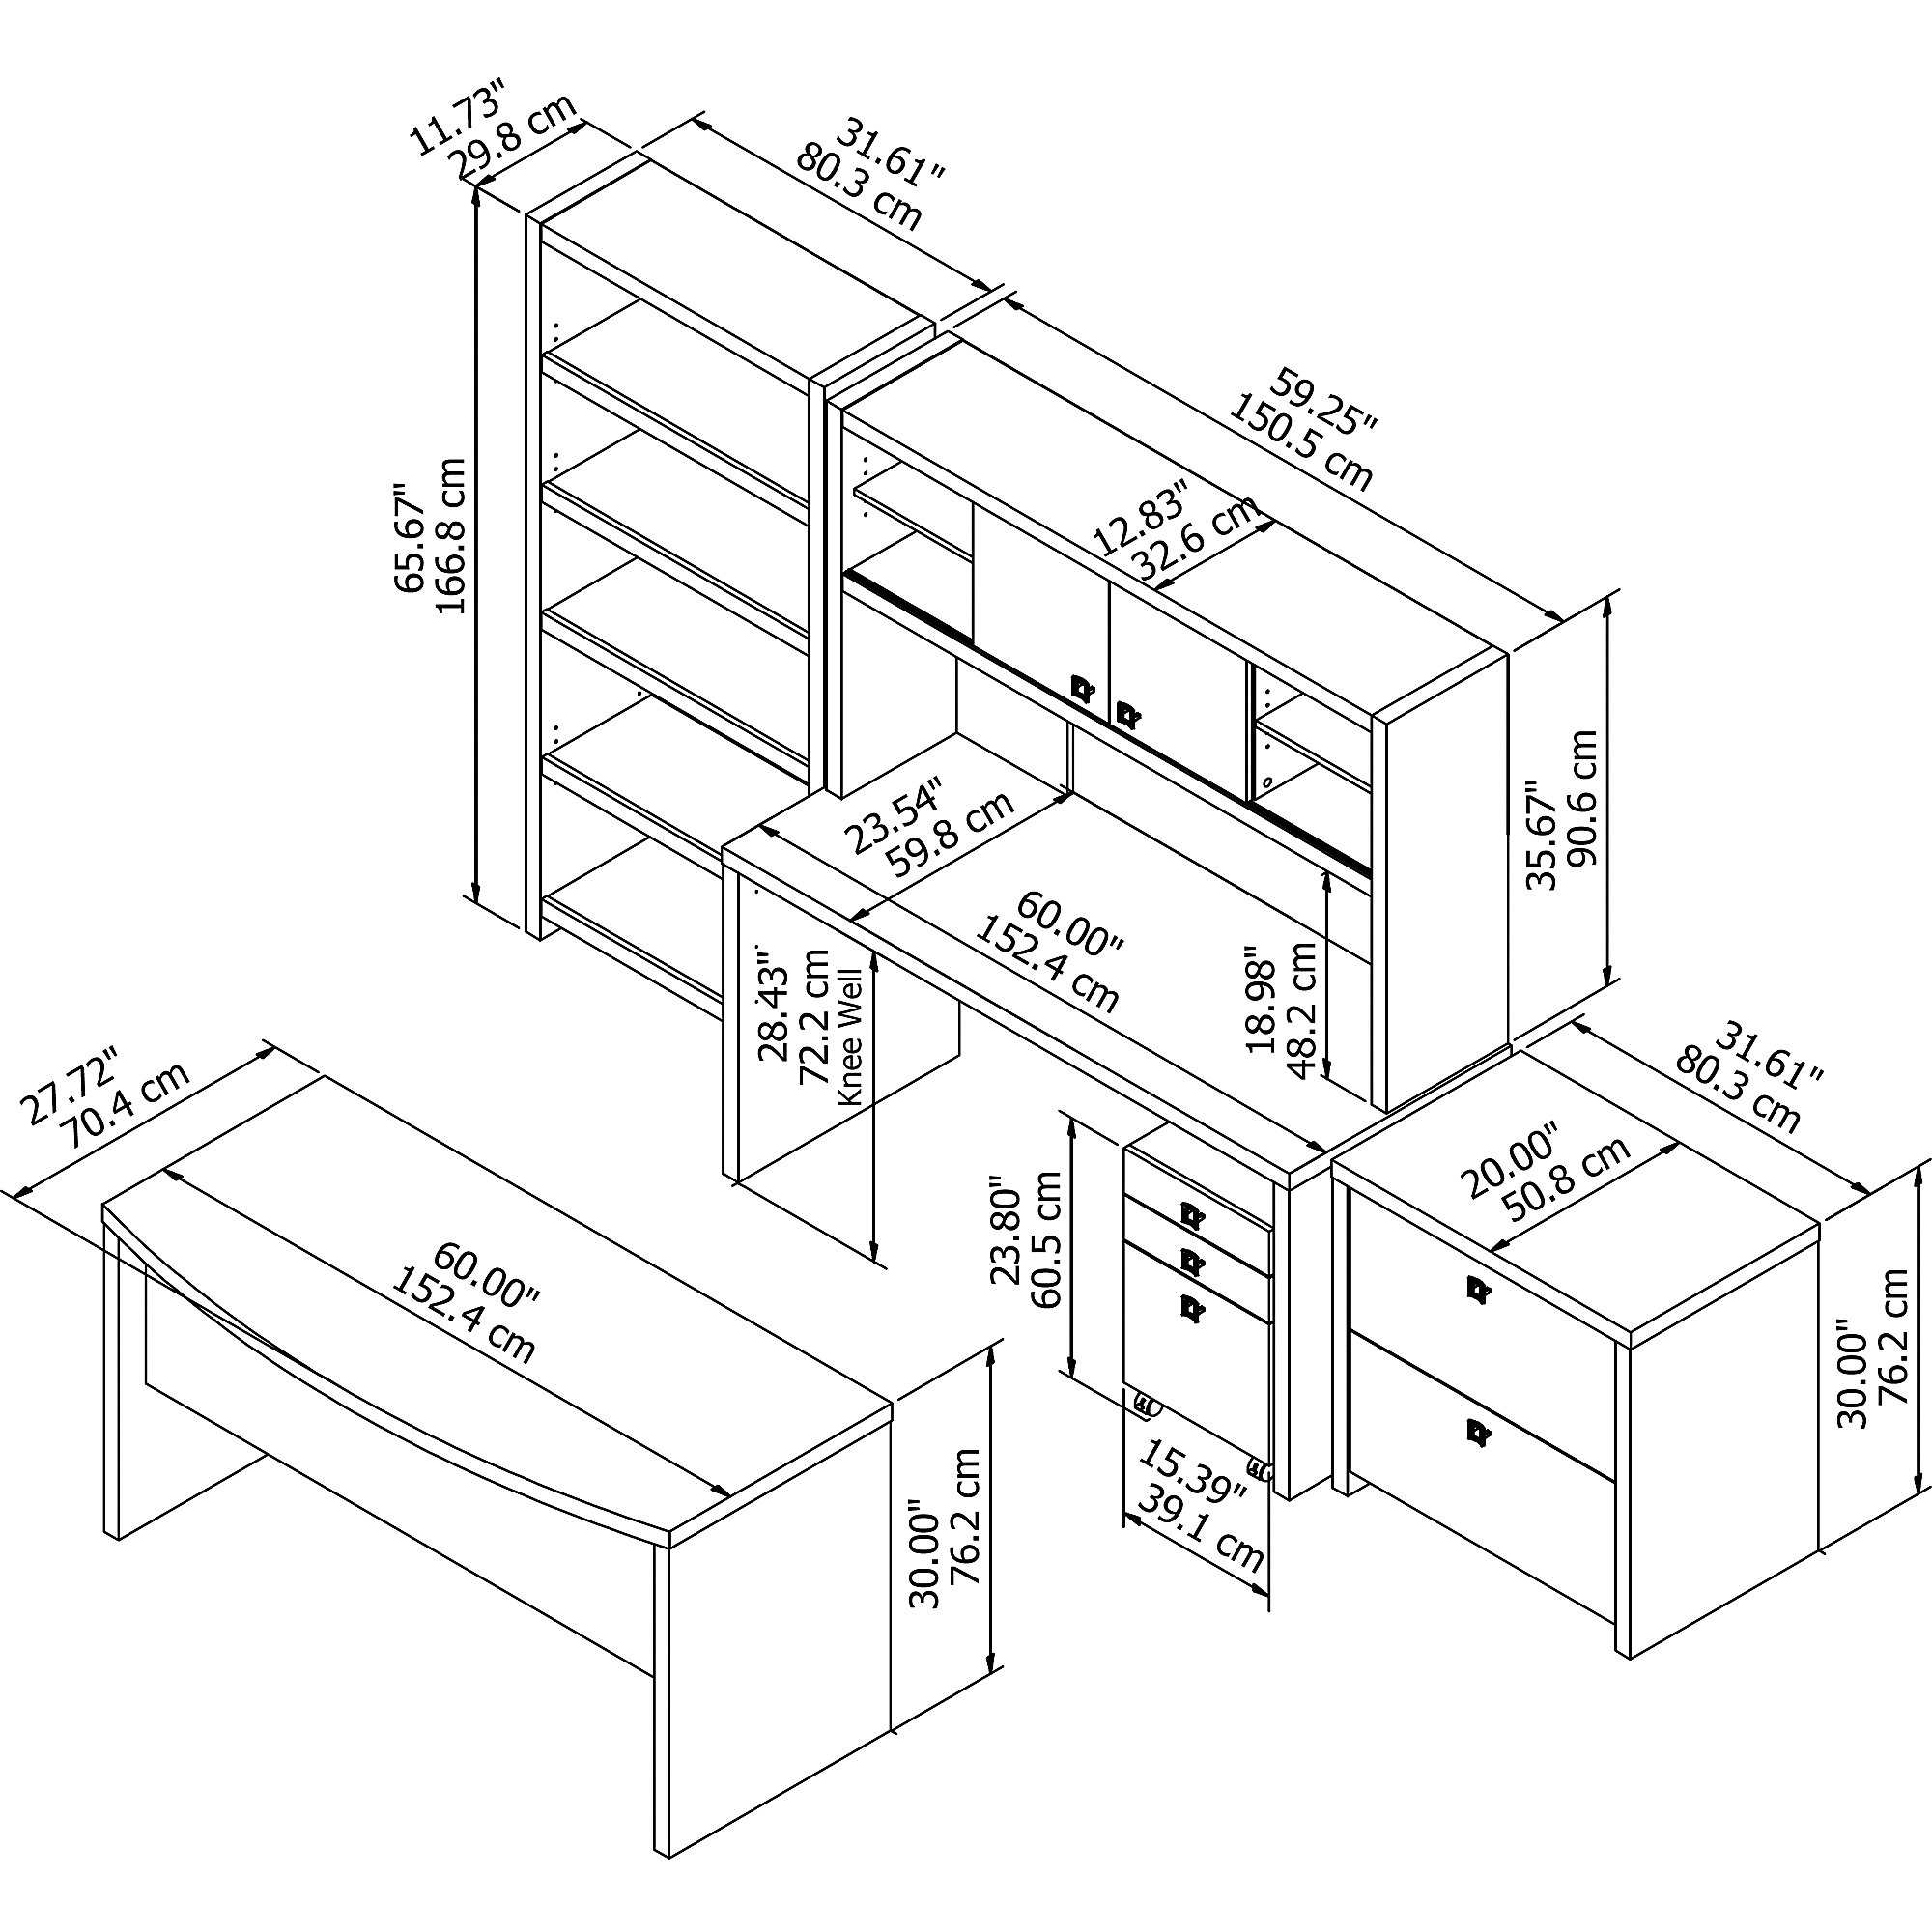 ech029 desk and component dimensions